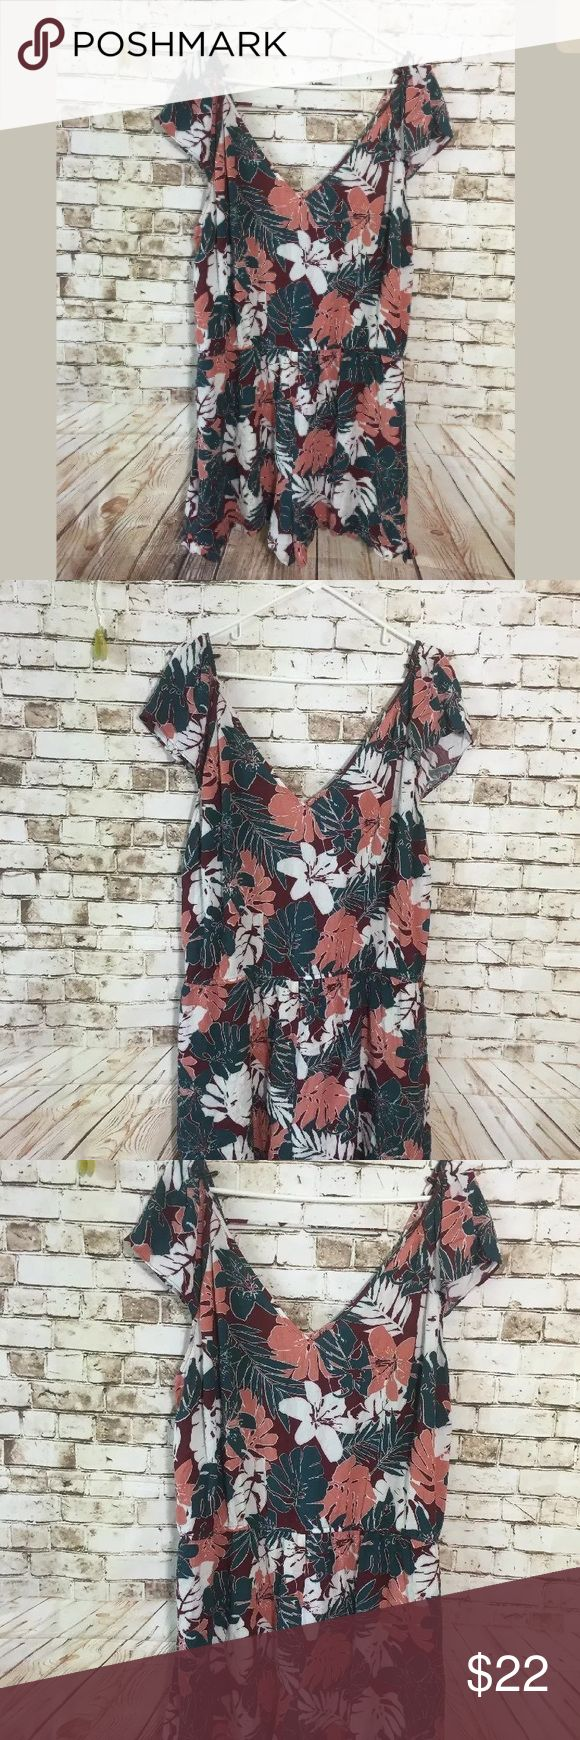 """Forever 21 plus Sz 3X floral boho romper 26"""" chest measurement . In great condition!! Bundle & save or ask for discounts, lots of clothes up, we add new inventory everyday, make sure to come back anlet us know for additional discount. Forever 21 Pants Jumpsuits & Rompers"""